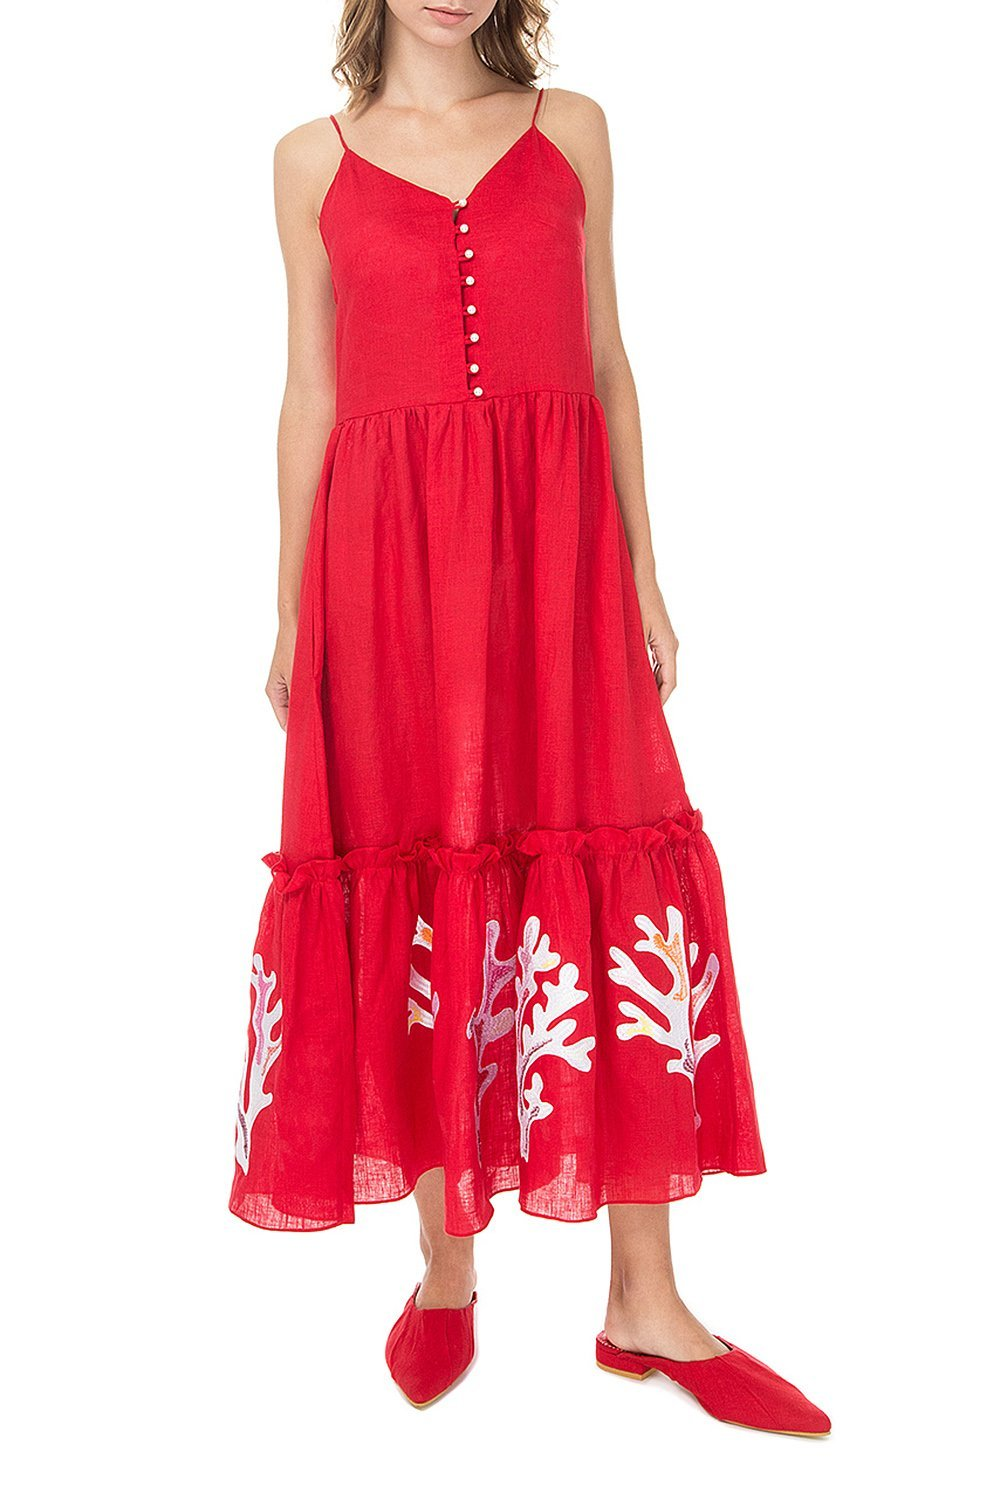 Saint-Tropez No Sleeved Red Dress